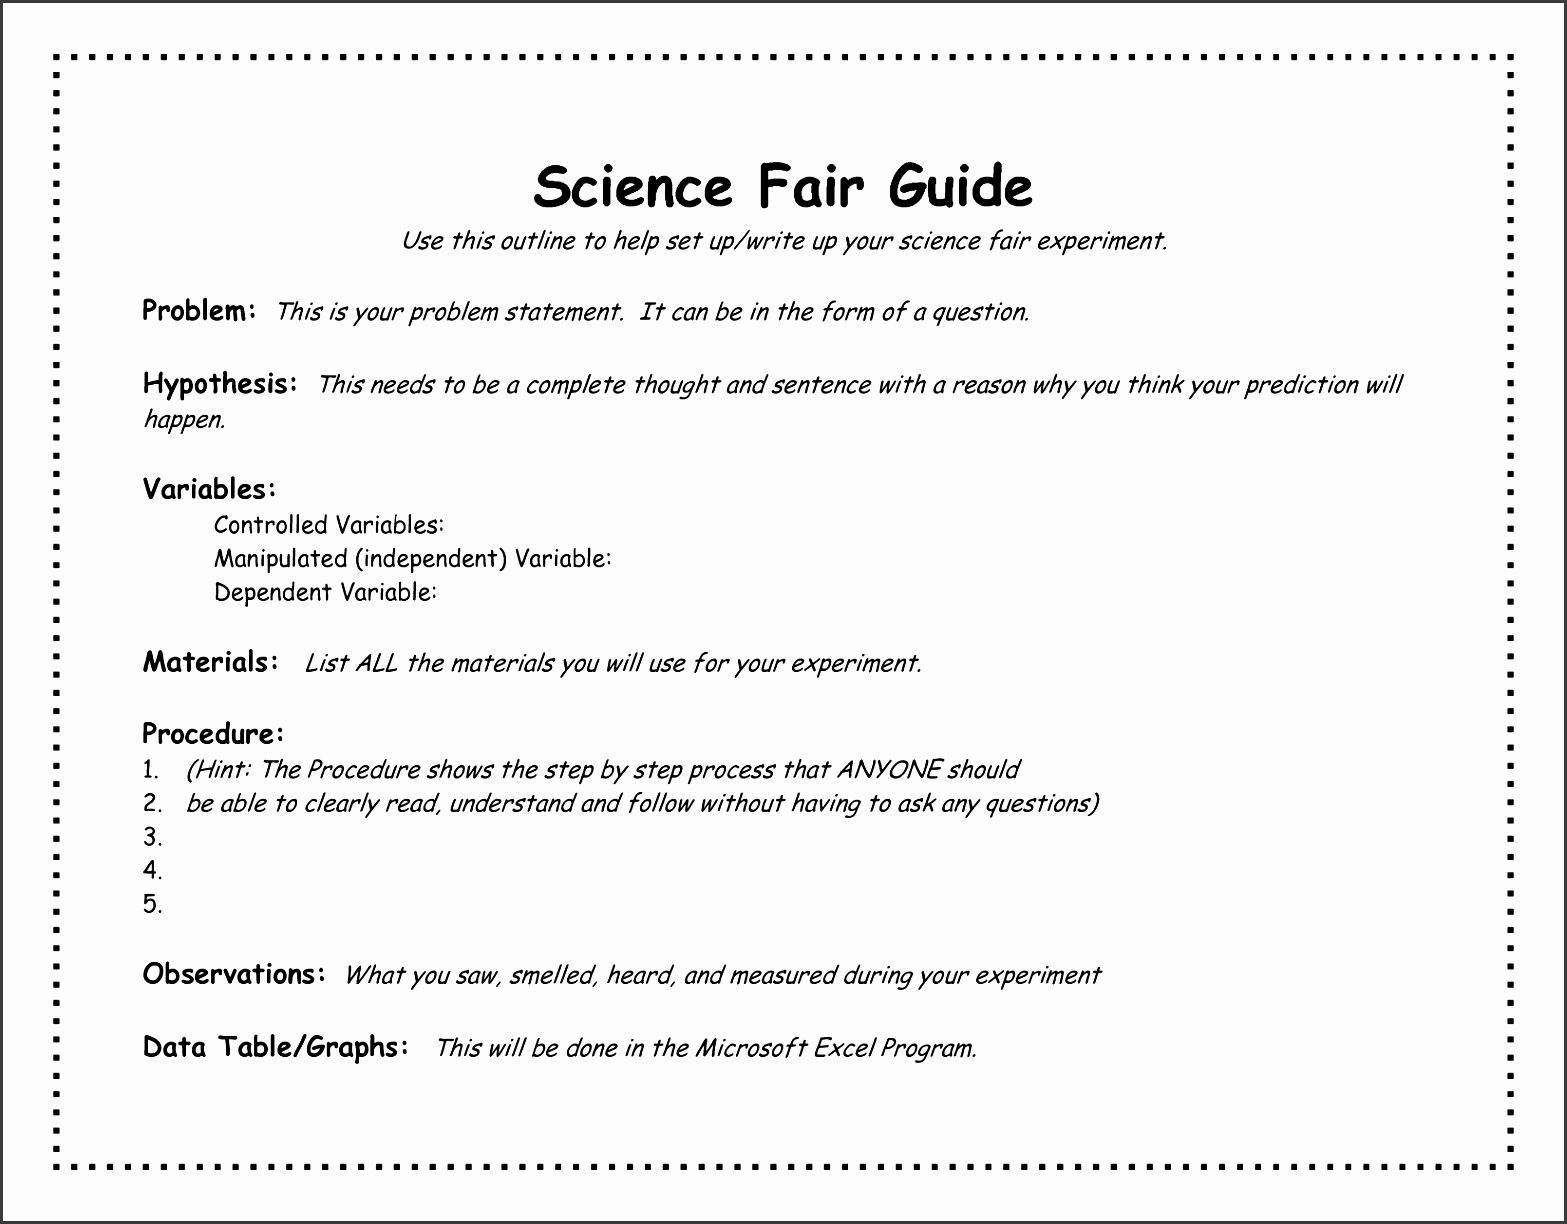 Science Fair Project Template Word Inspirational 8 Project Outline Templates Sampletemplatess